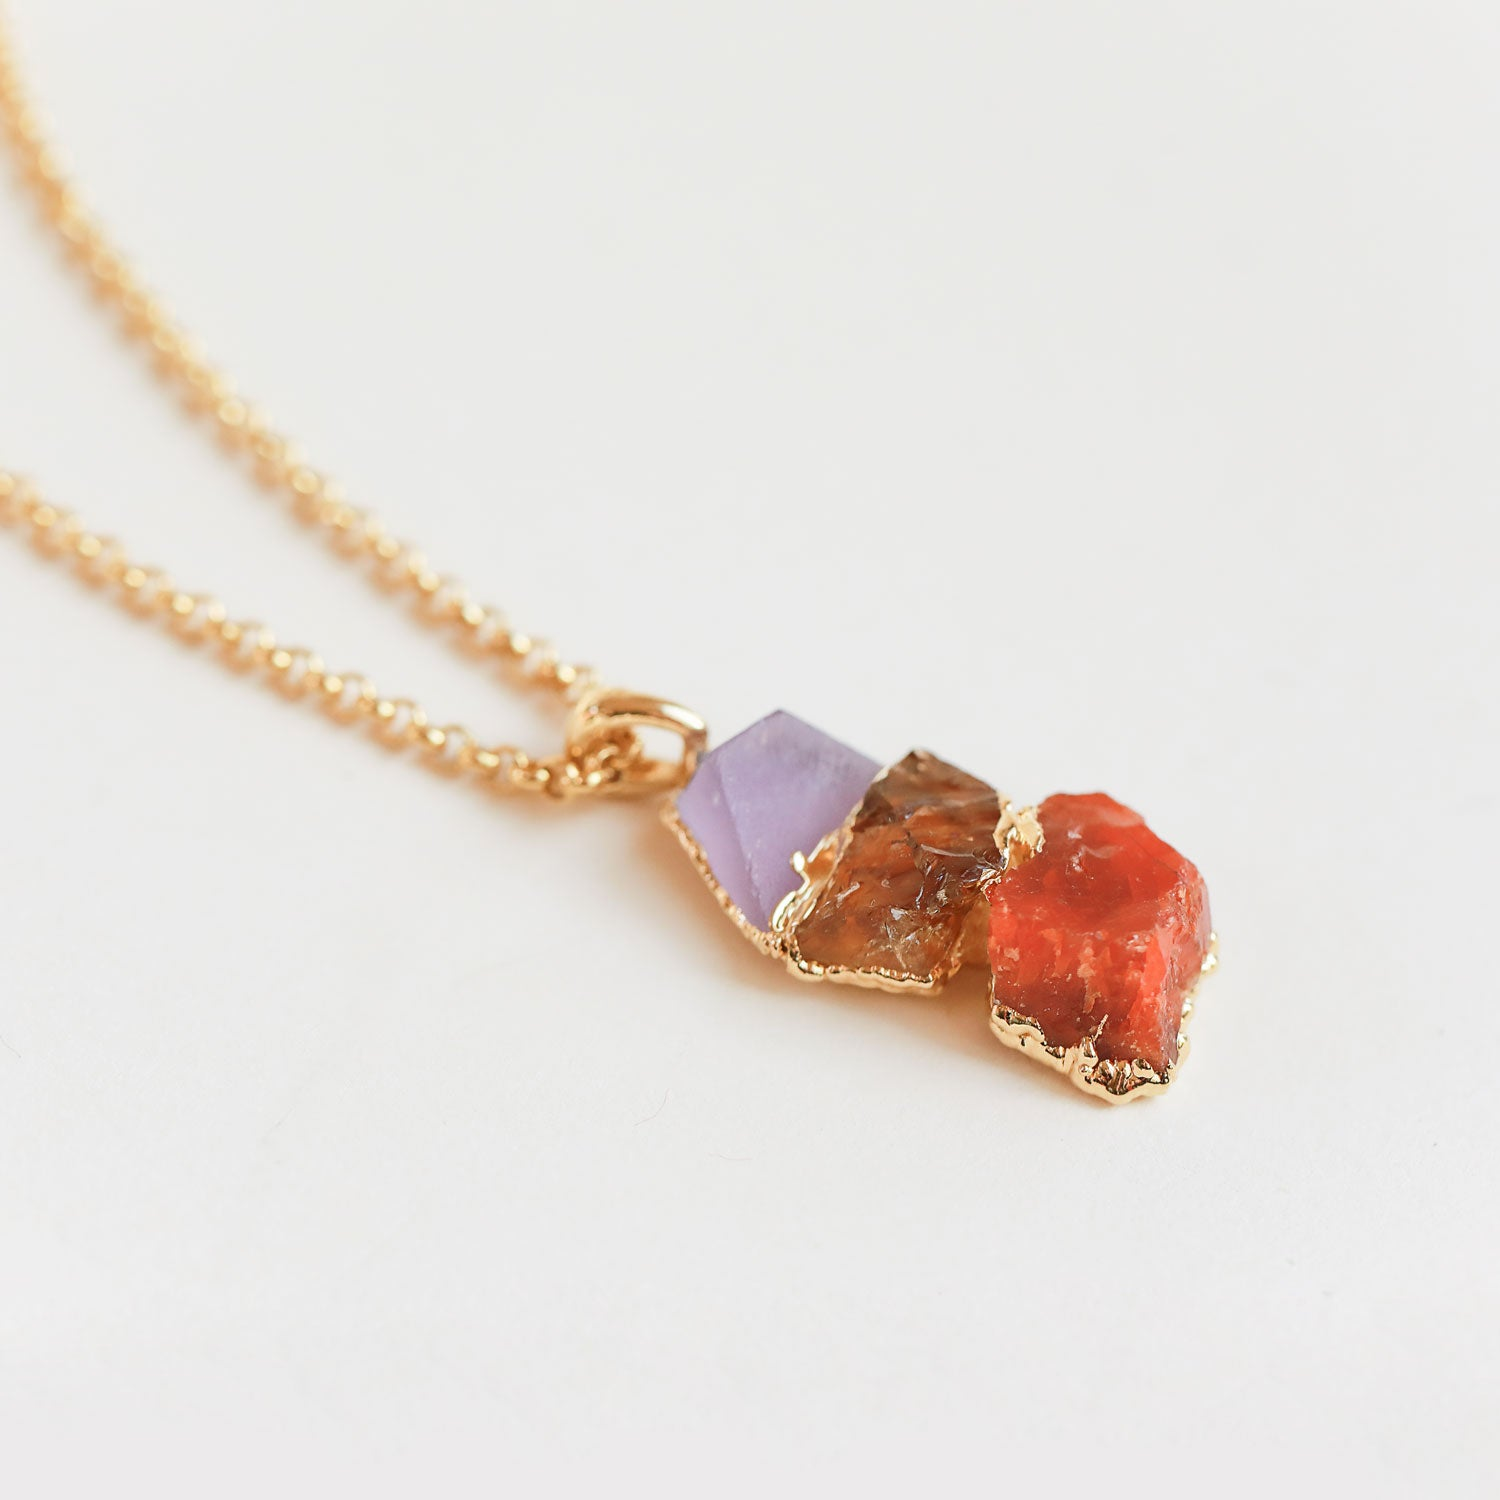 Handmade Necklace Amethyst and Carnelian Pendant